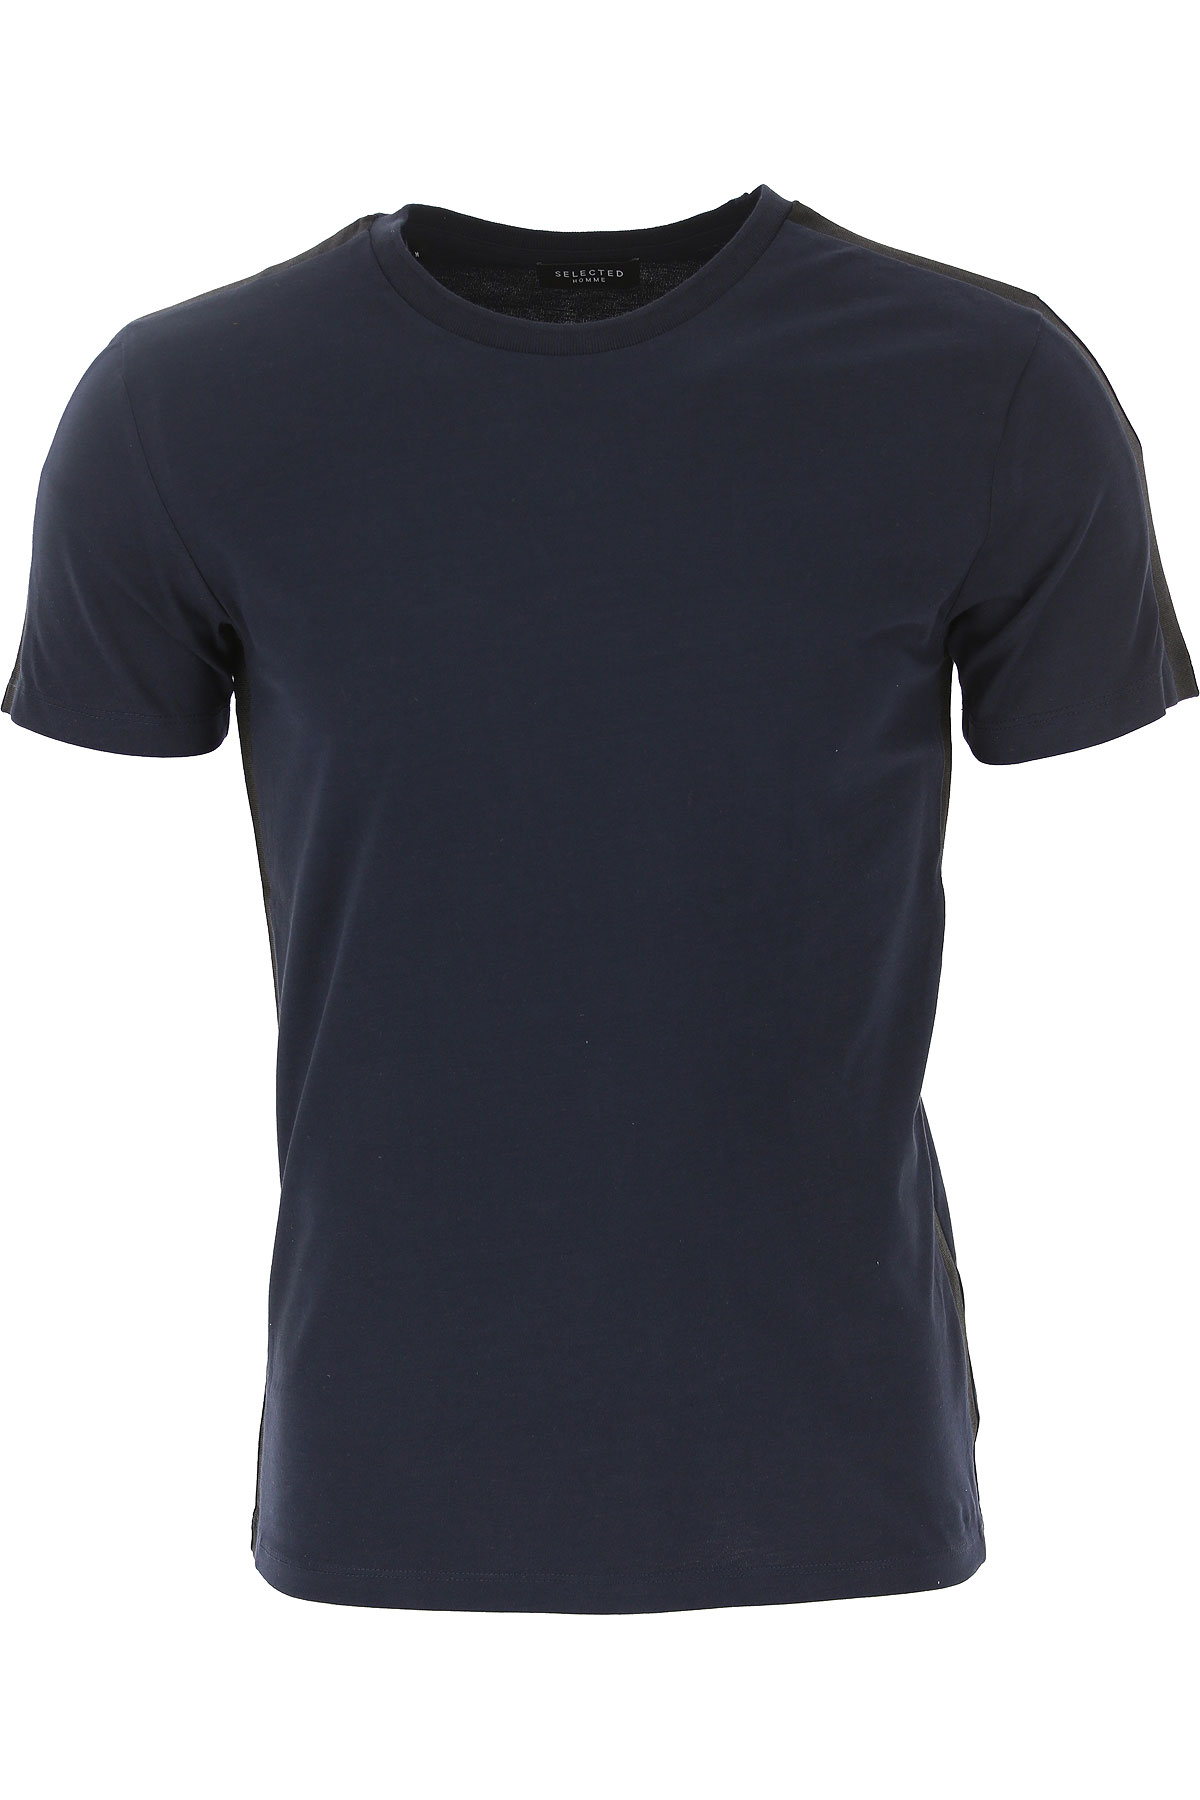 Selected T-Shirt for Men On Sale in Outlet, Dark Sapphire, Cotton, 2019, M XL